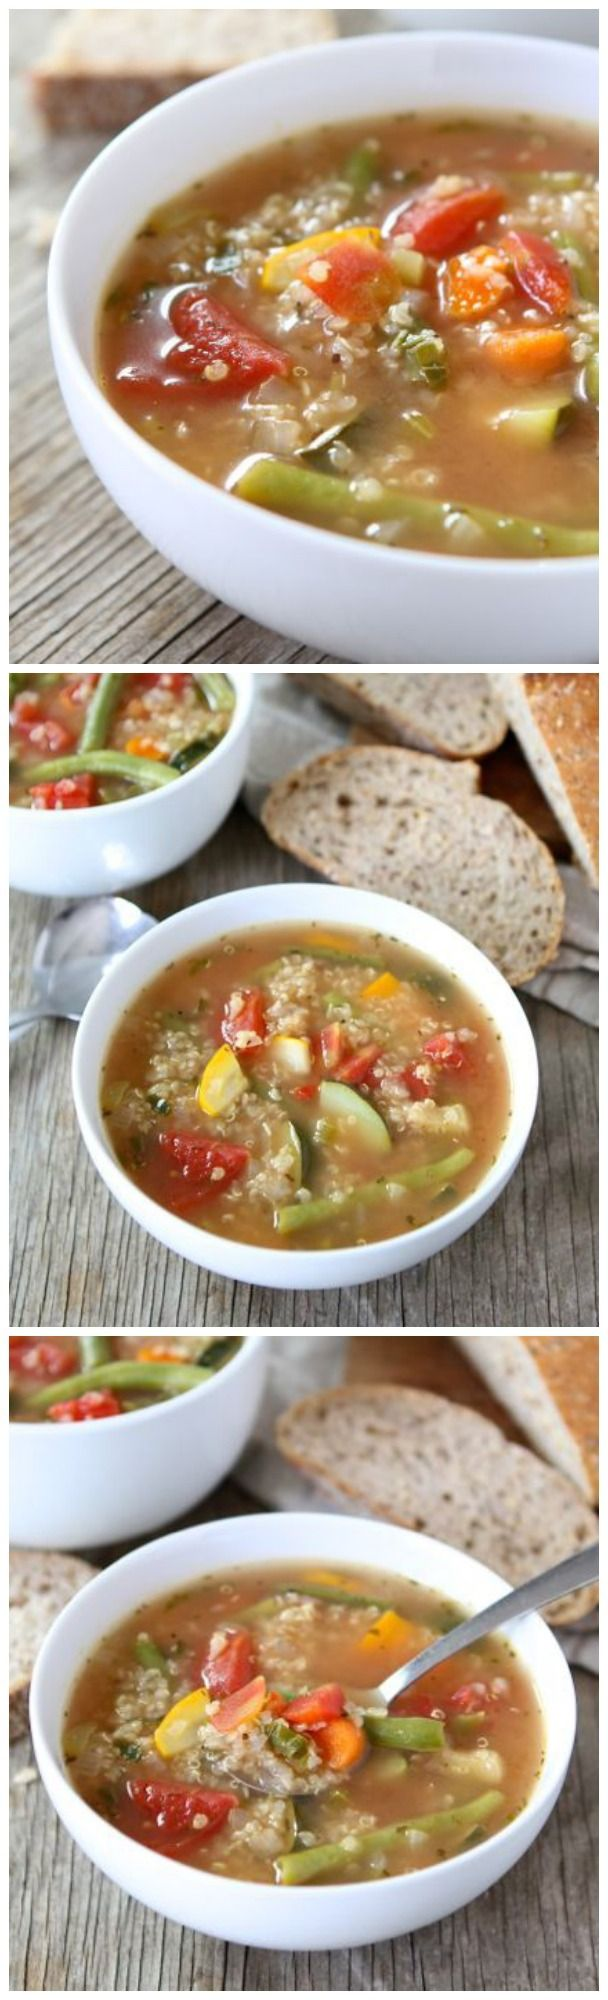 Easy Vegetable Quinoa Soup on twopeasandtheirpod.com Love this healthy ...